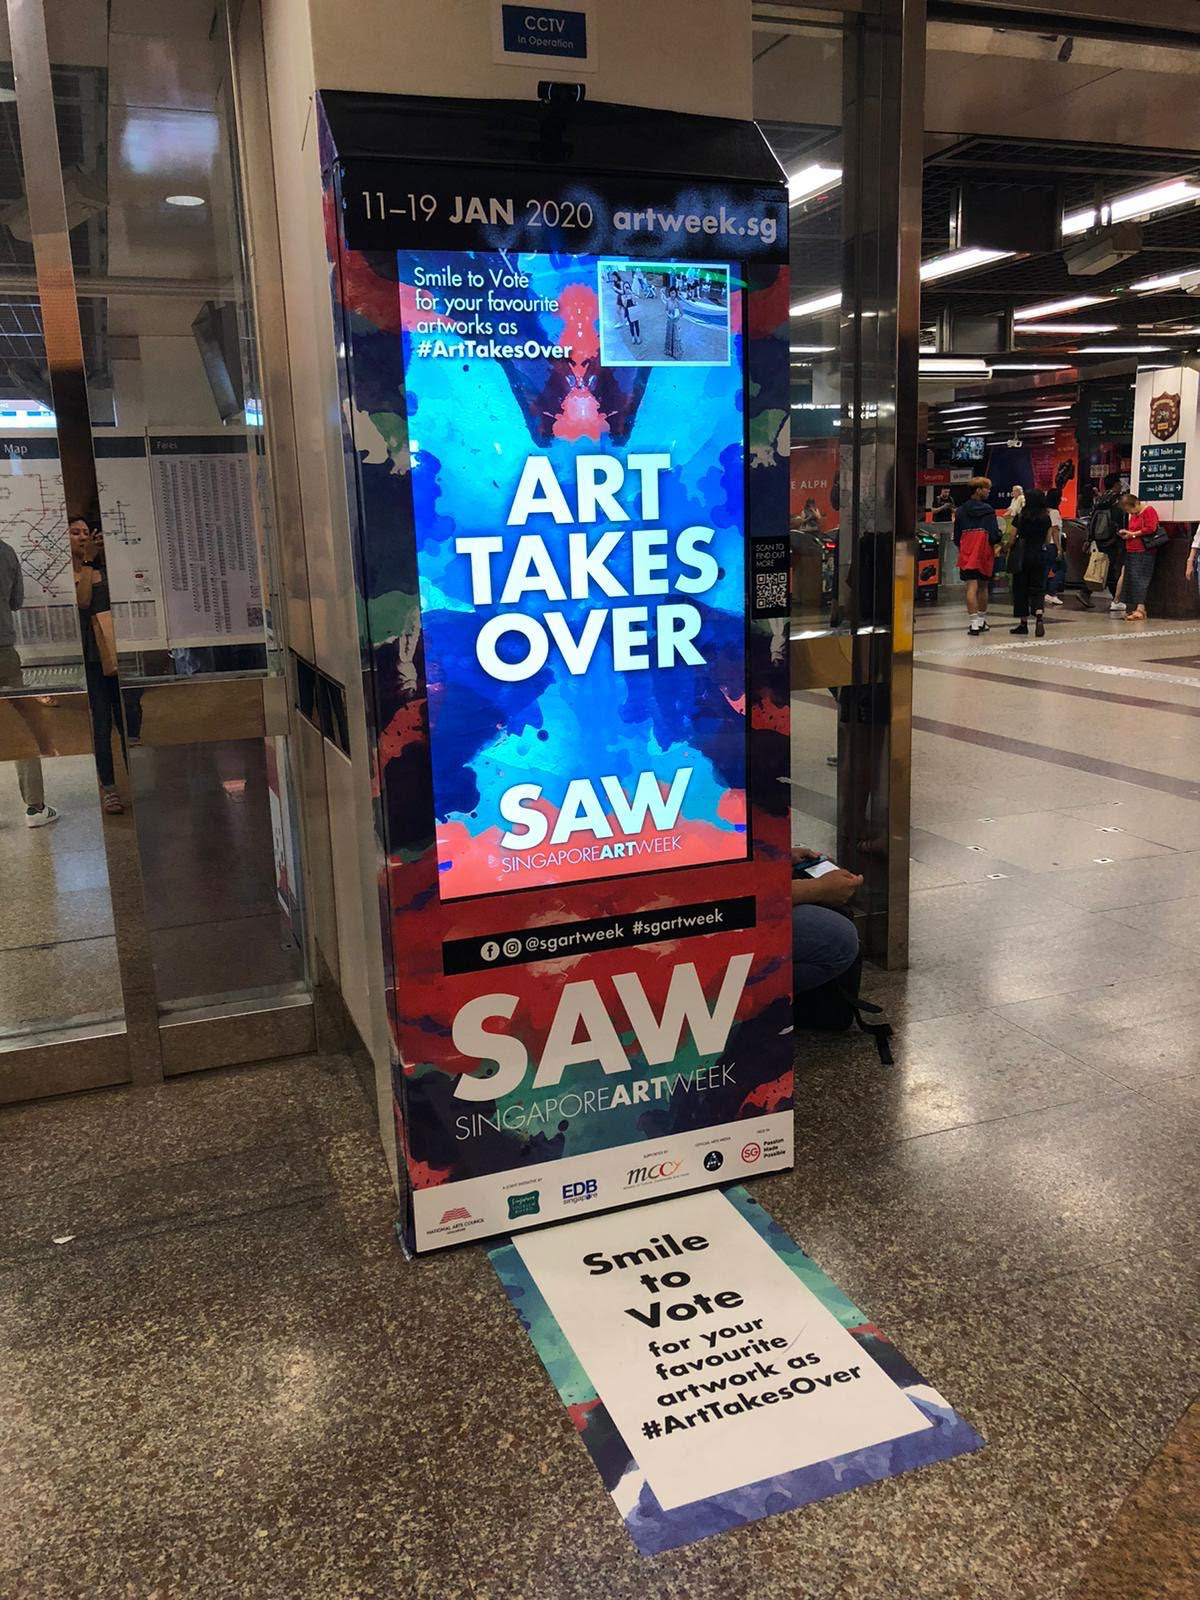 singapore art week 2020 - smile to vote at city hall mrt station